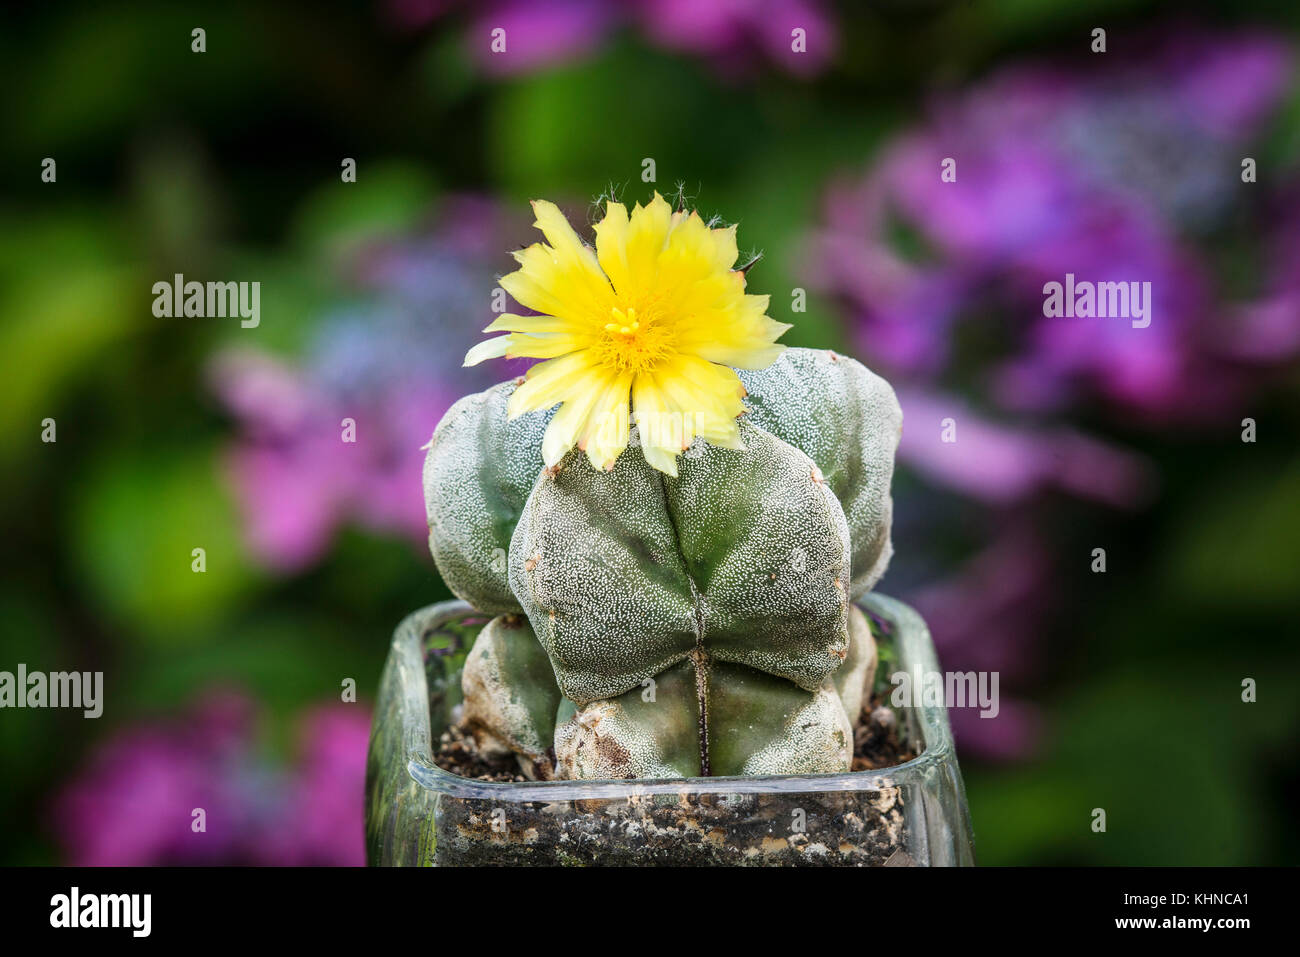 Cactus with a yellow flower in a garden with purple flowers in the background blooming in the summer - Stock Image